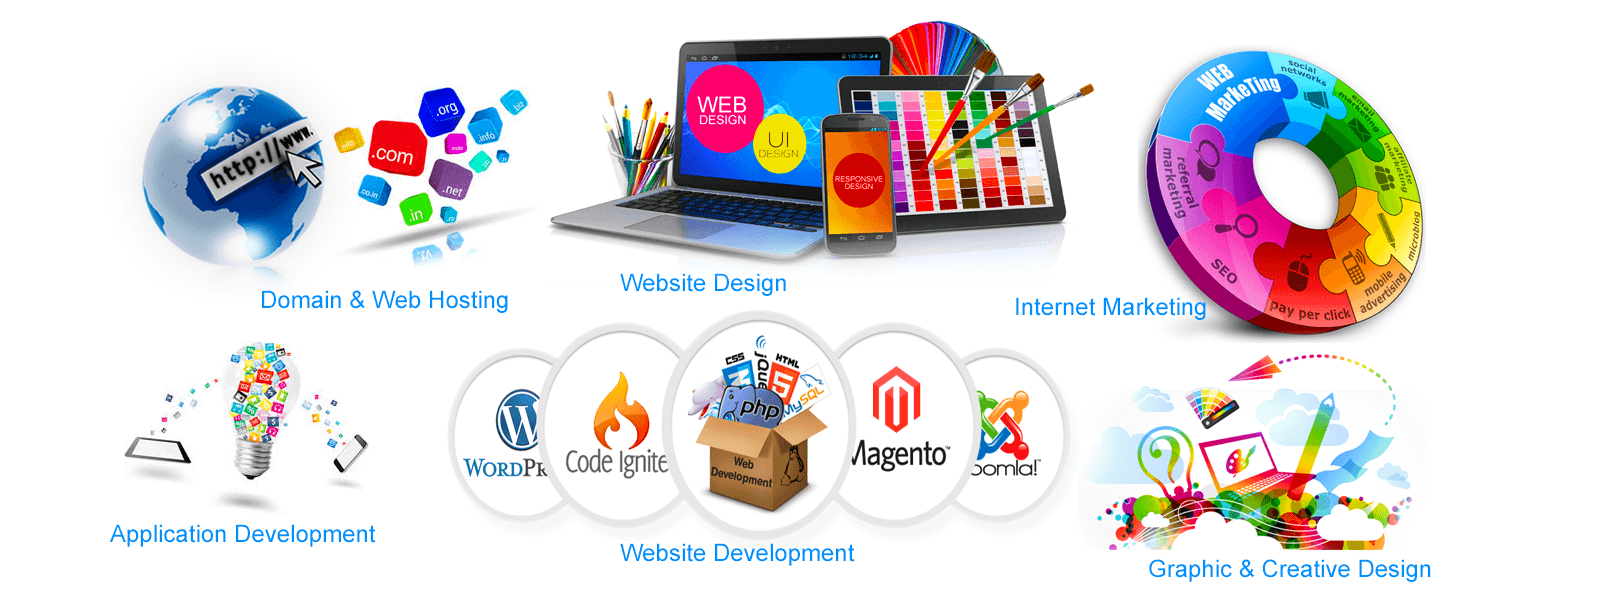 Ecommerce Web Development Company Digital Marketing Agency SEO Services Best Social Media Marketing Packages Professional PPC Consultant Graphic Design Branding Mobile Website Content Marketing